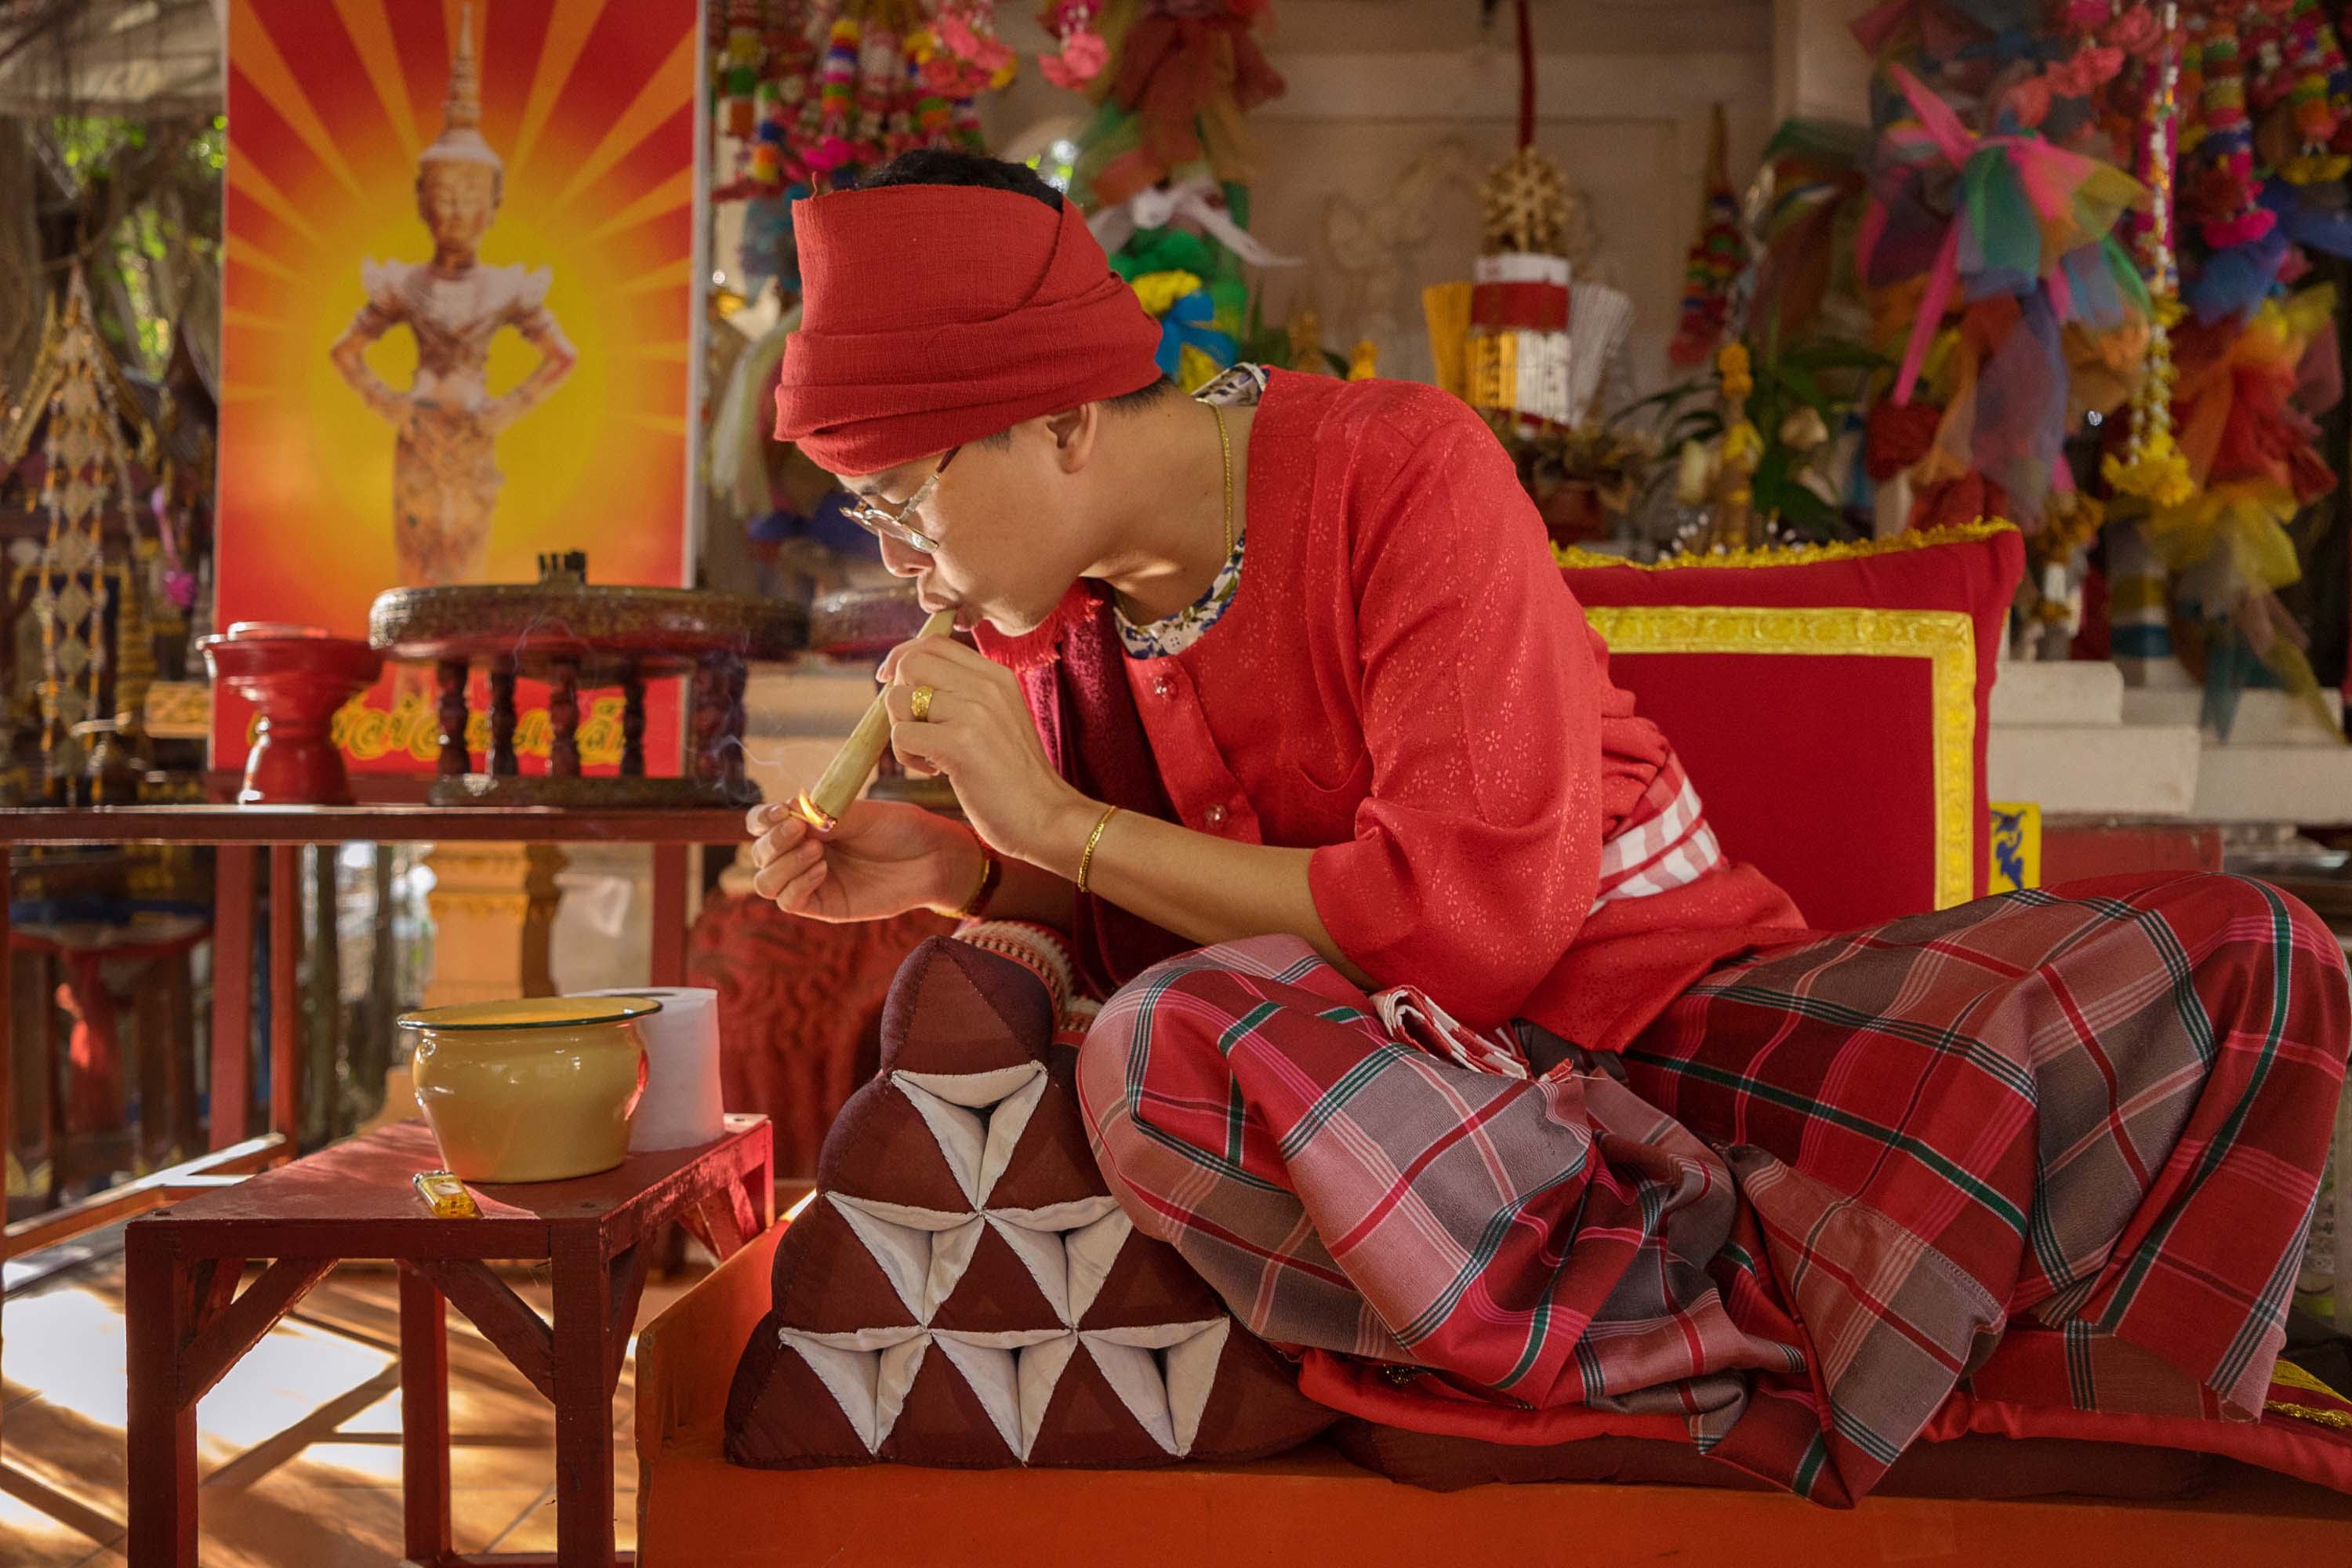 A maa khii in Chiang Mai lights a traditional cigar for the enjoyment of their spirit.